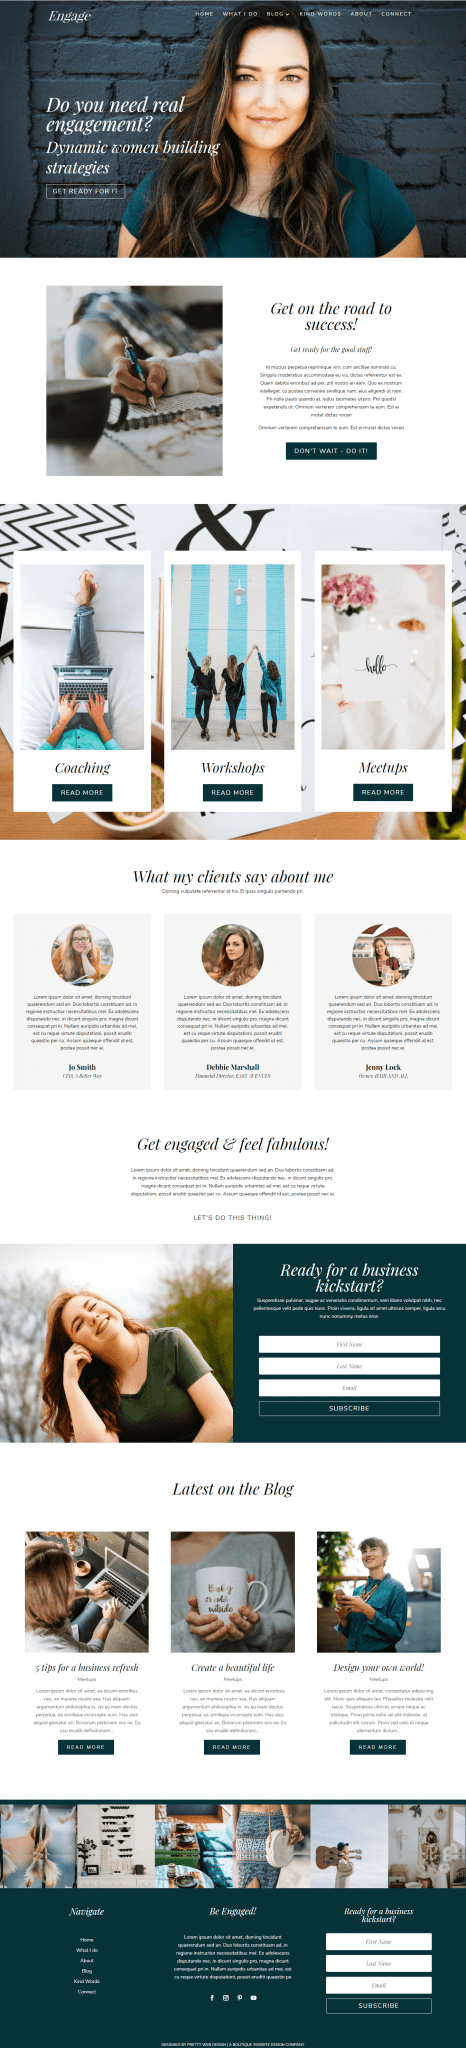 Engage a Divi blog child theme